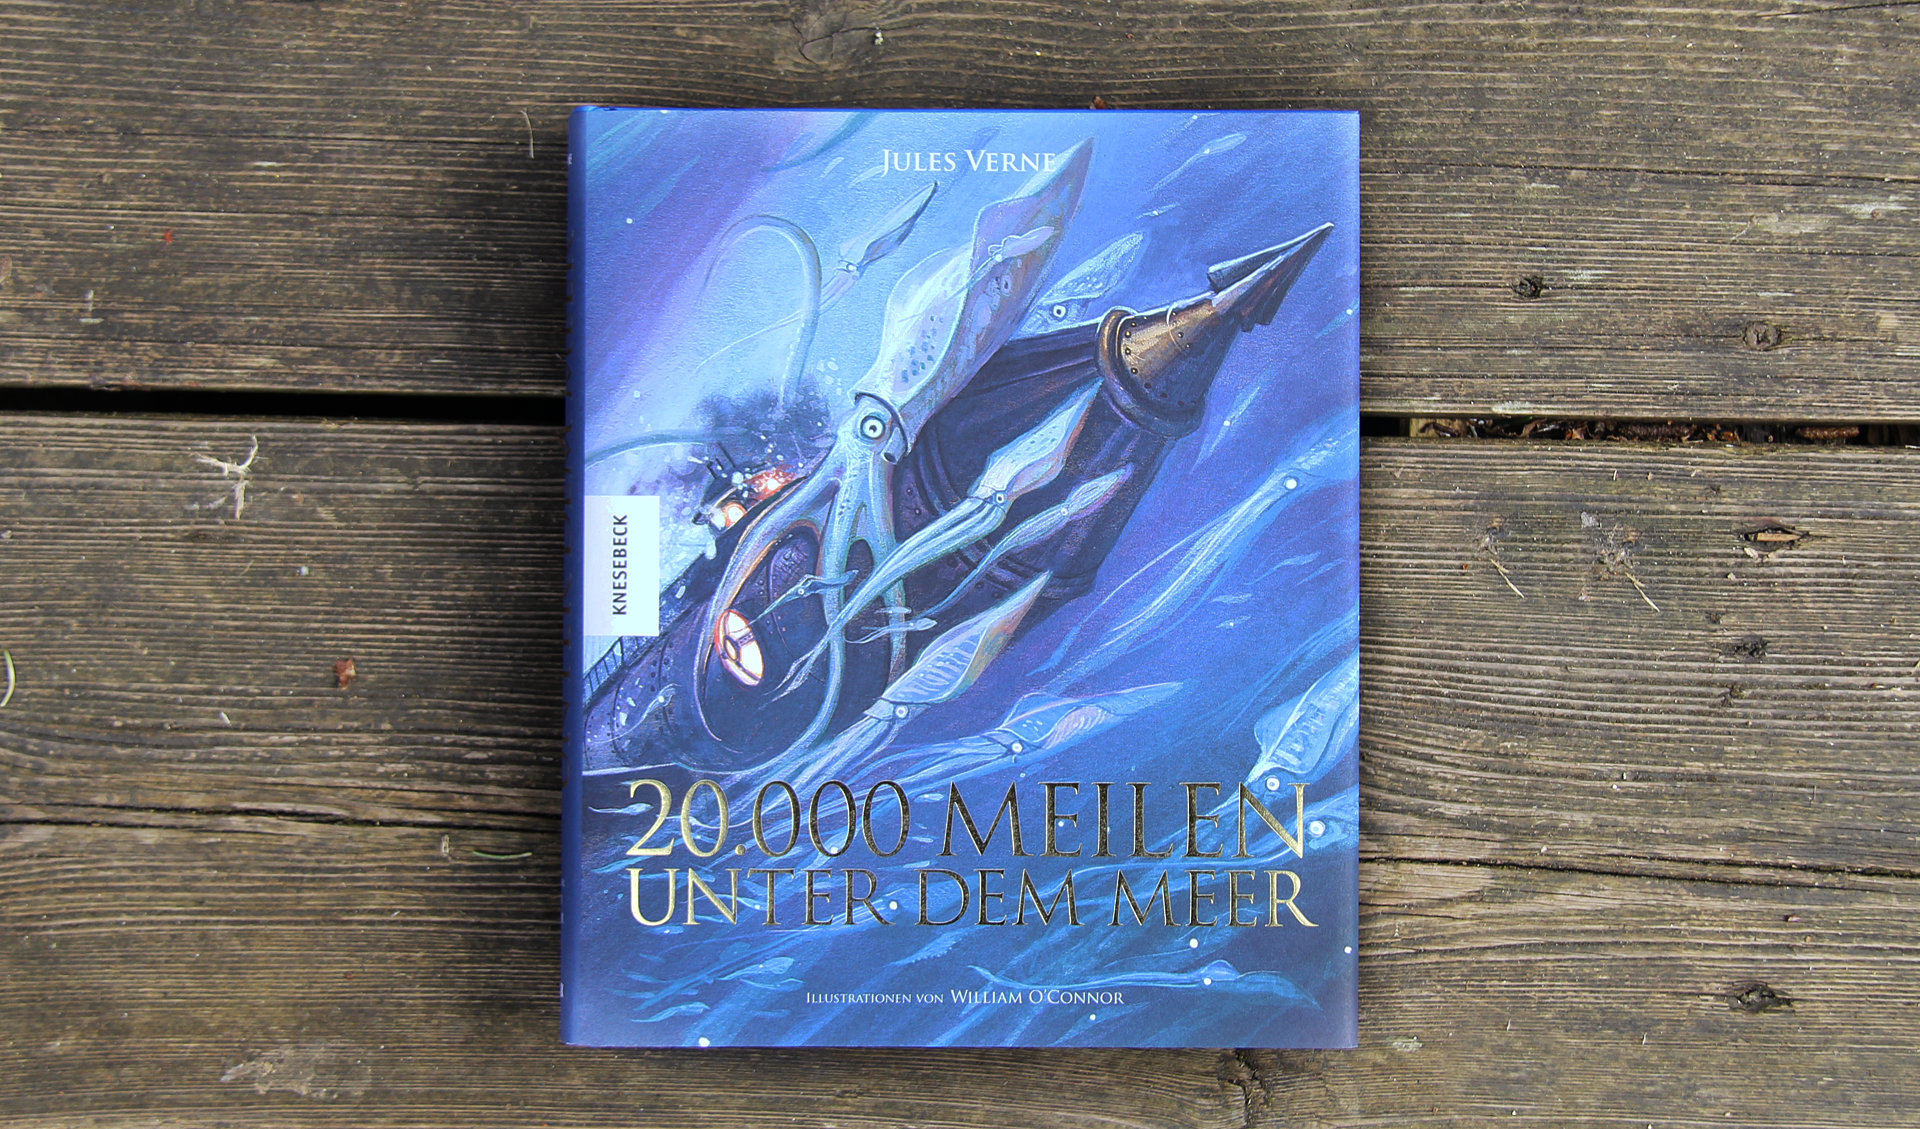 20.000 Meilen unter dem Meer • Jules Verne, William O'Connor